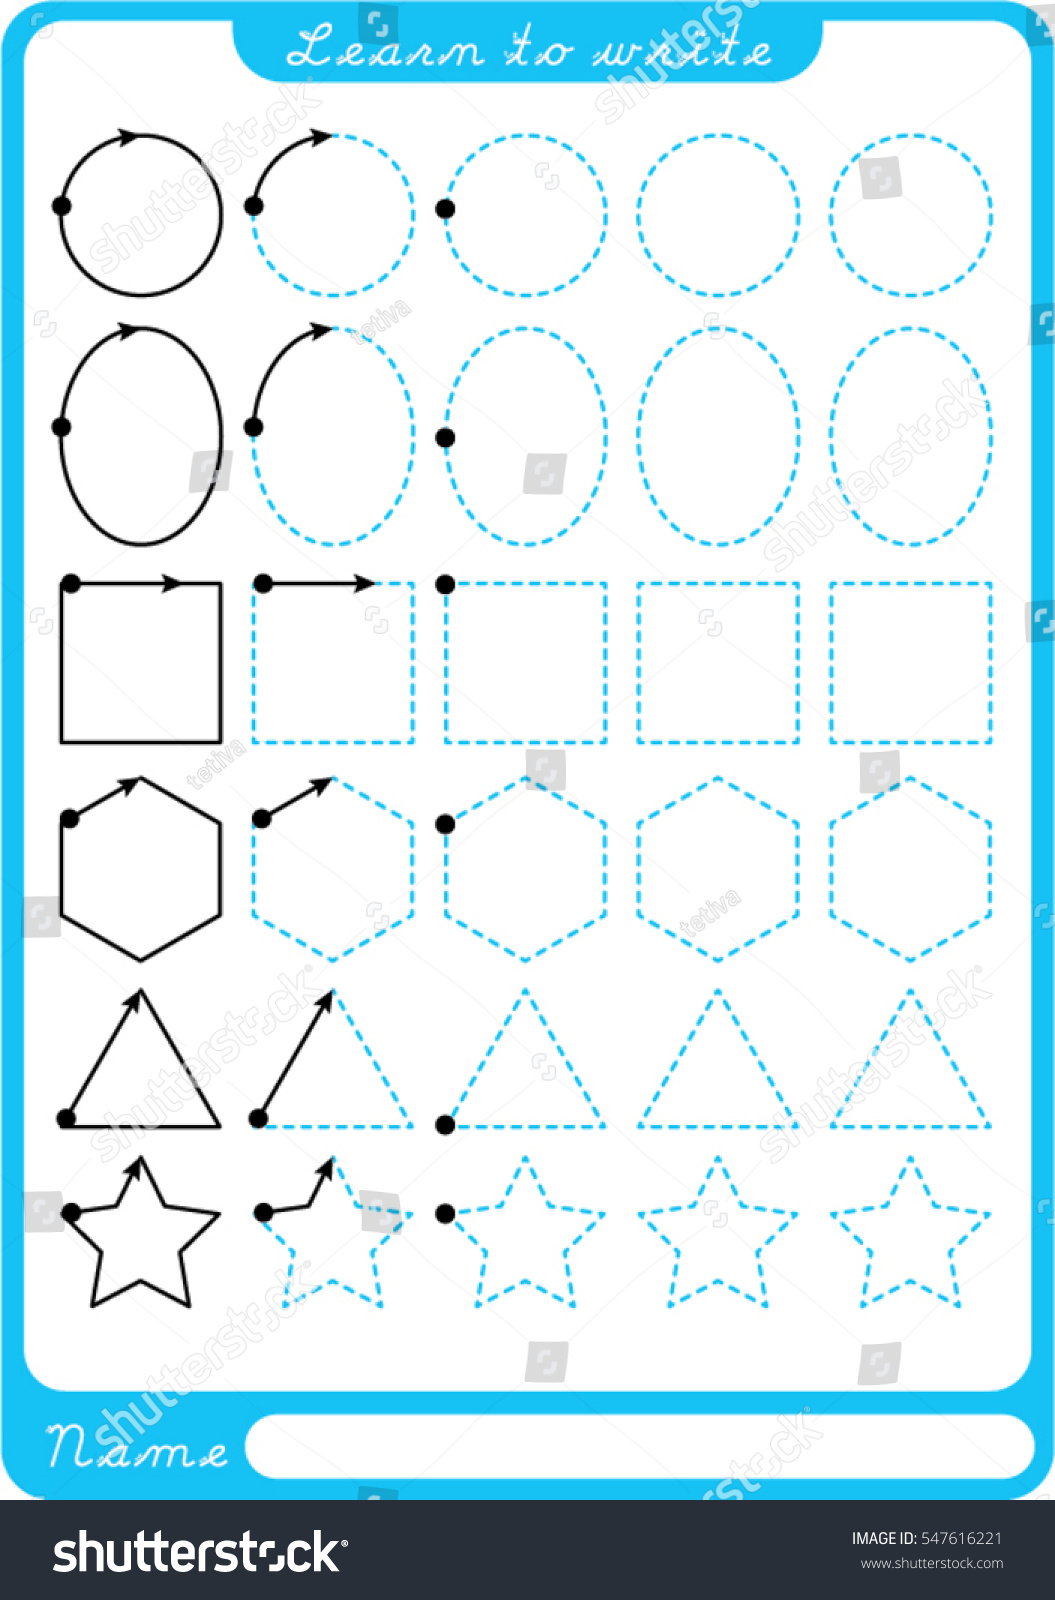 Vector Drawing Lines Worksheet : Worksheet fine motor skills worksheets grass fedjp